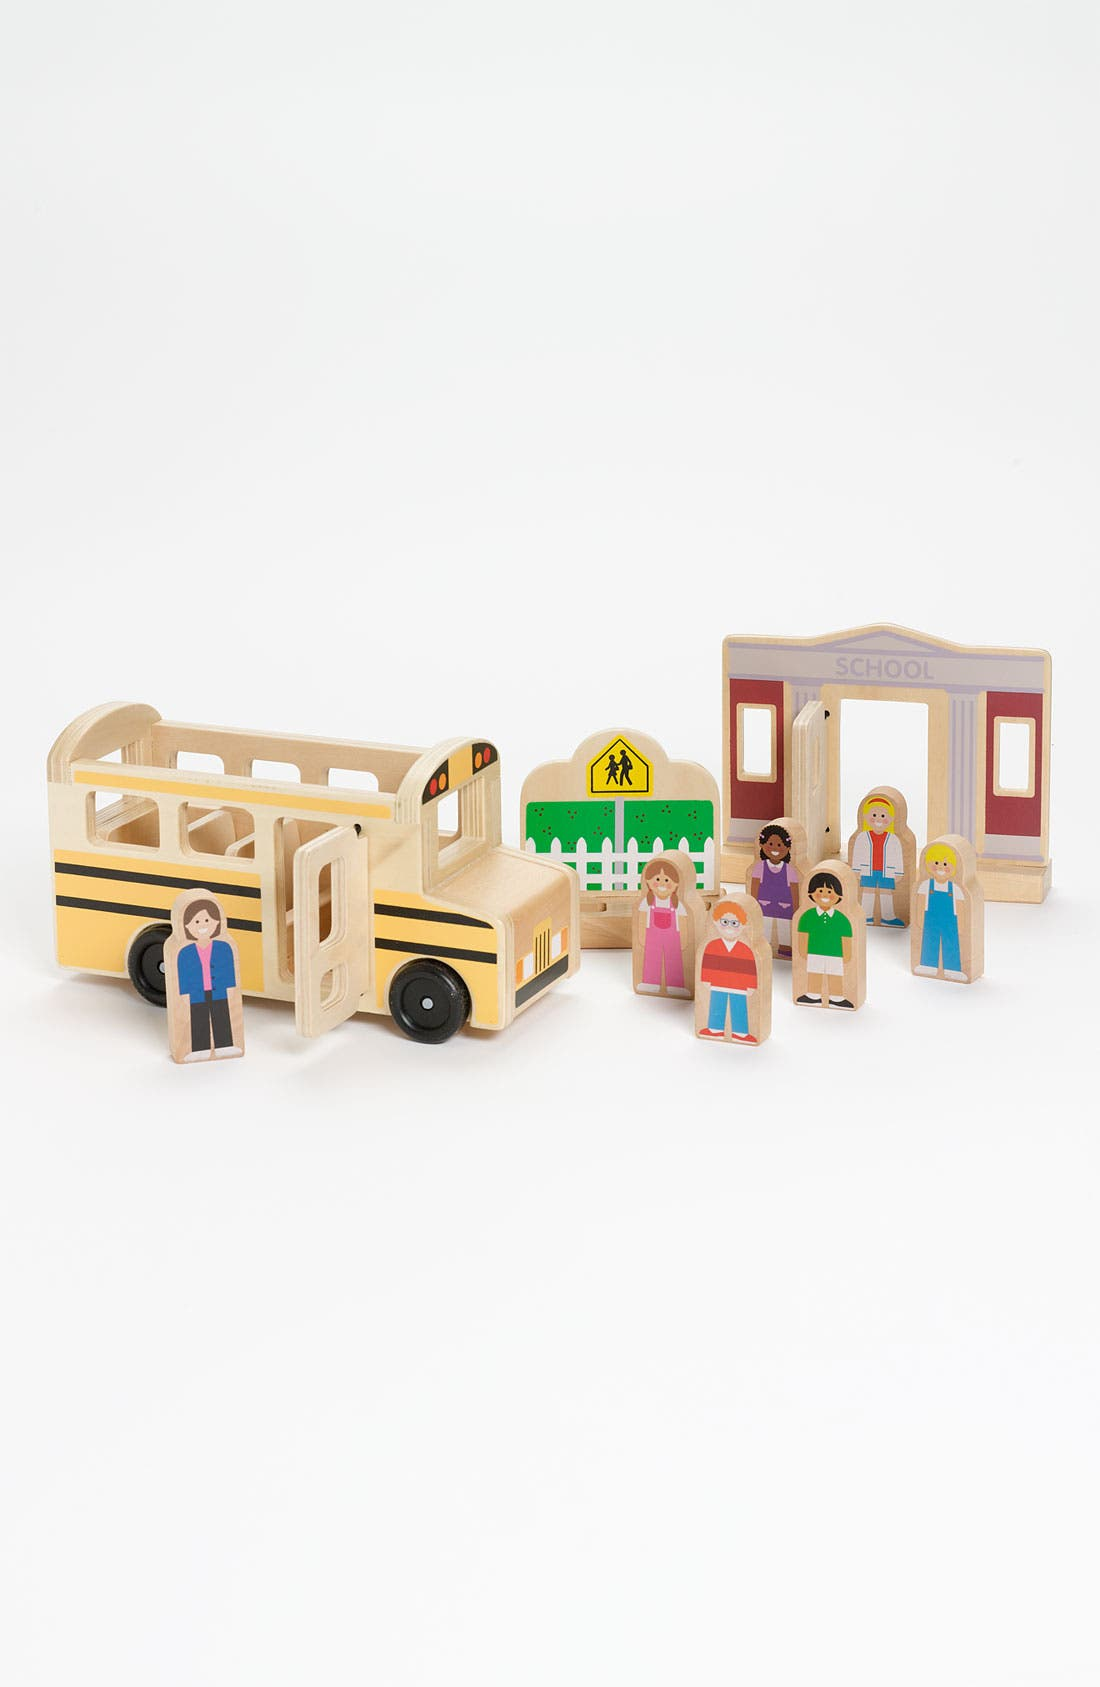 Main Image - Melissa & Doug Wooden School Bus Set